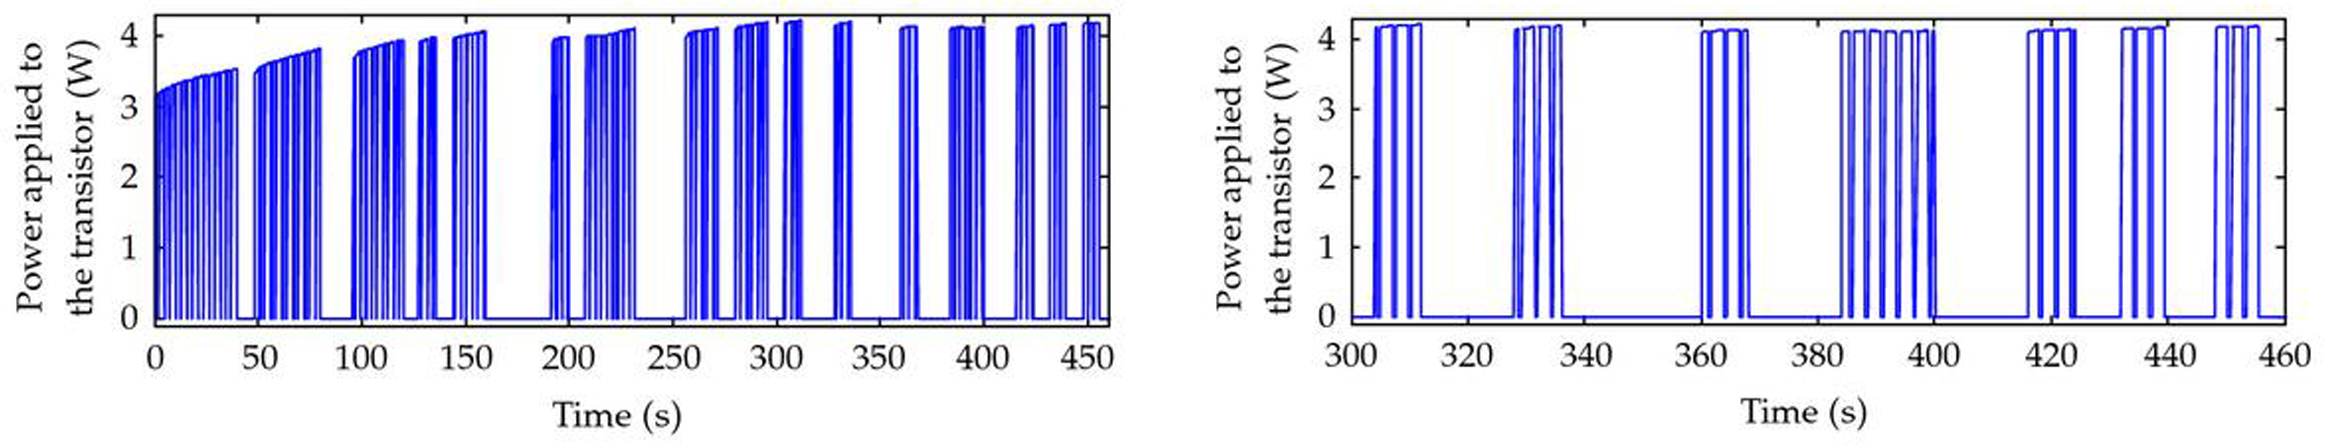 http://static-content.springer.com/image/art%3A10.1155%2F2011%2F687363/MediaObjects/13662_2010_Article_65_Fig7_HTML.jpg